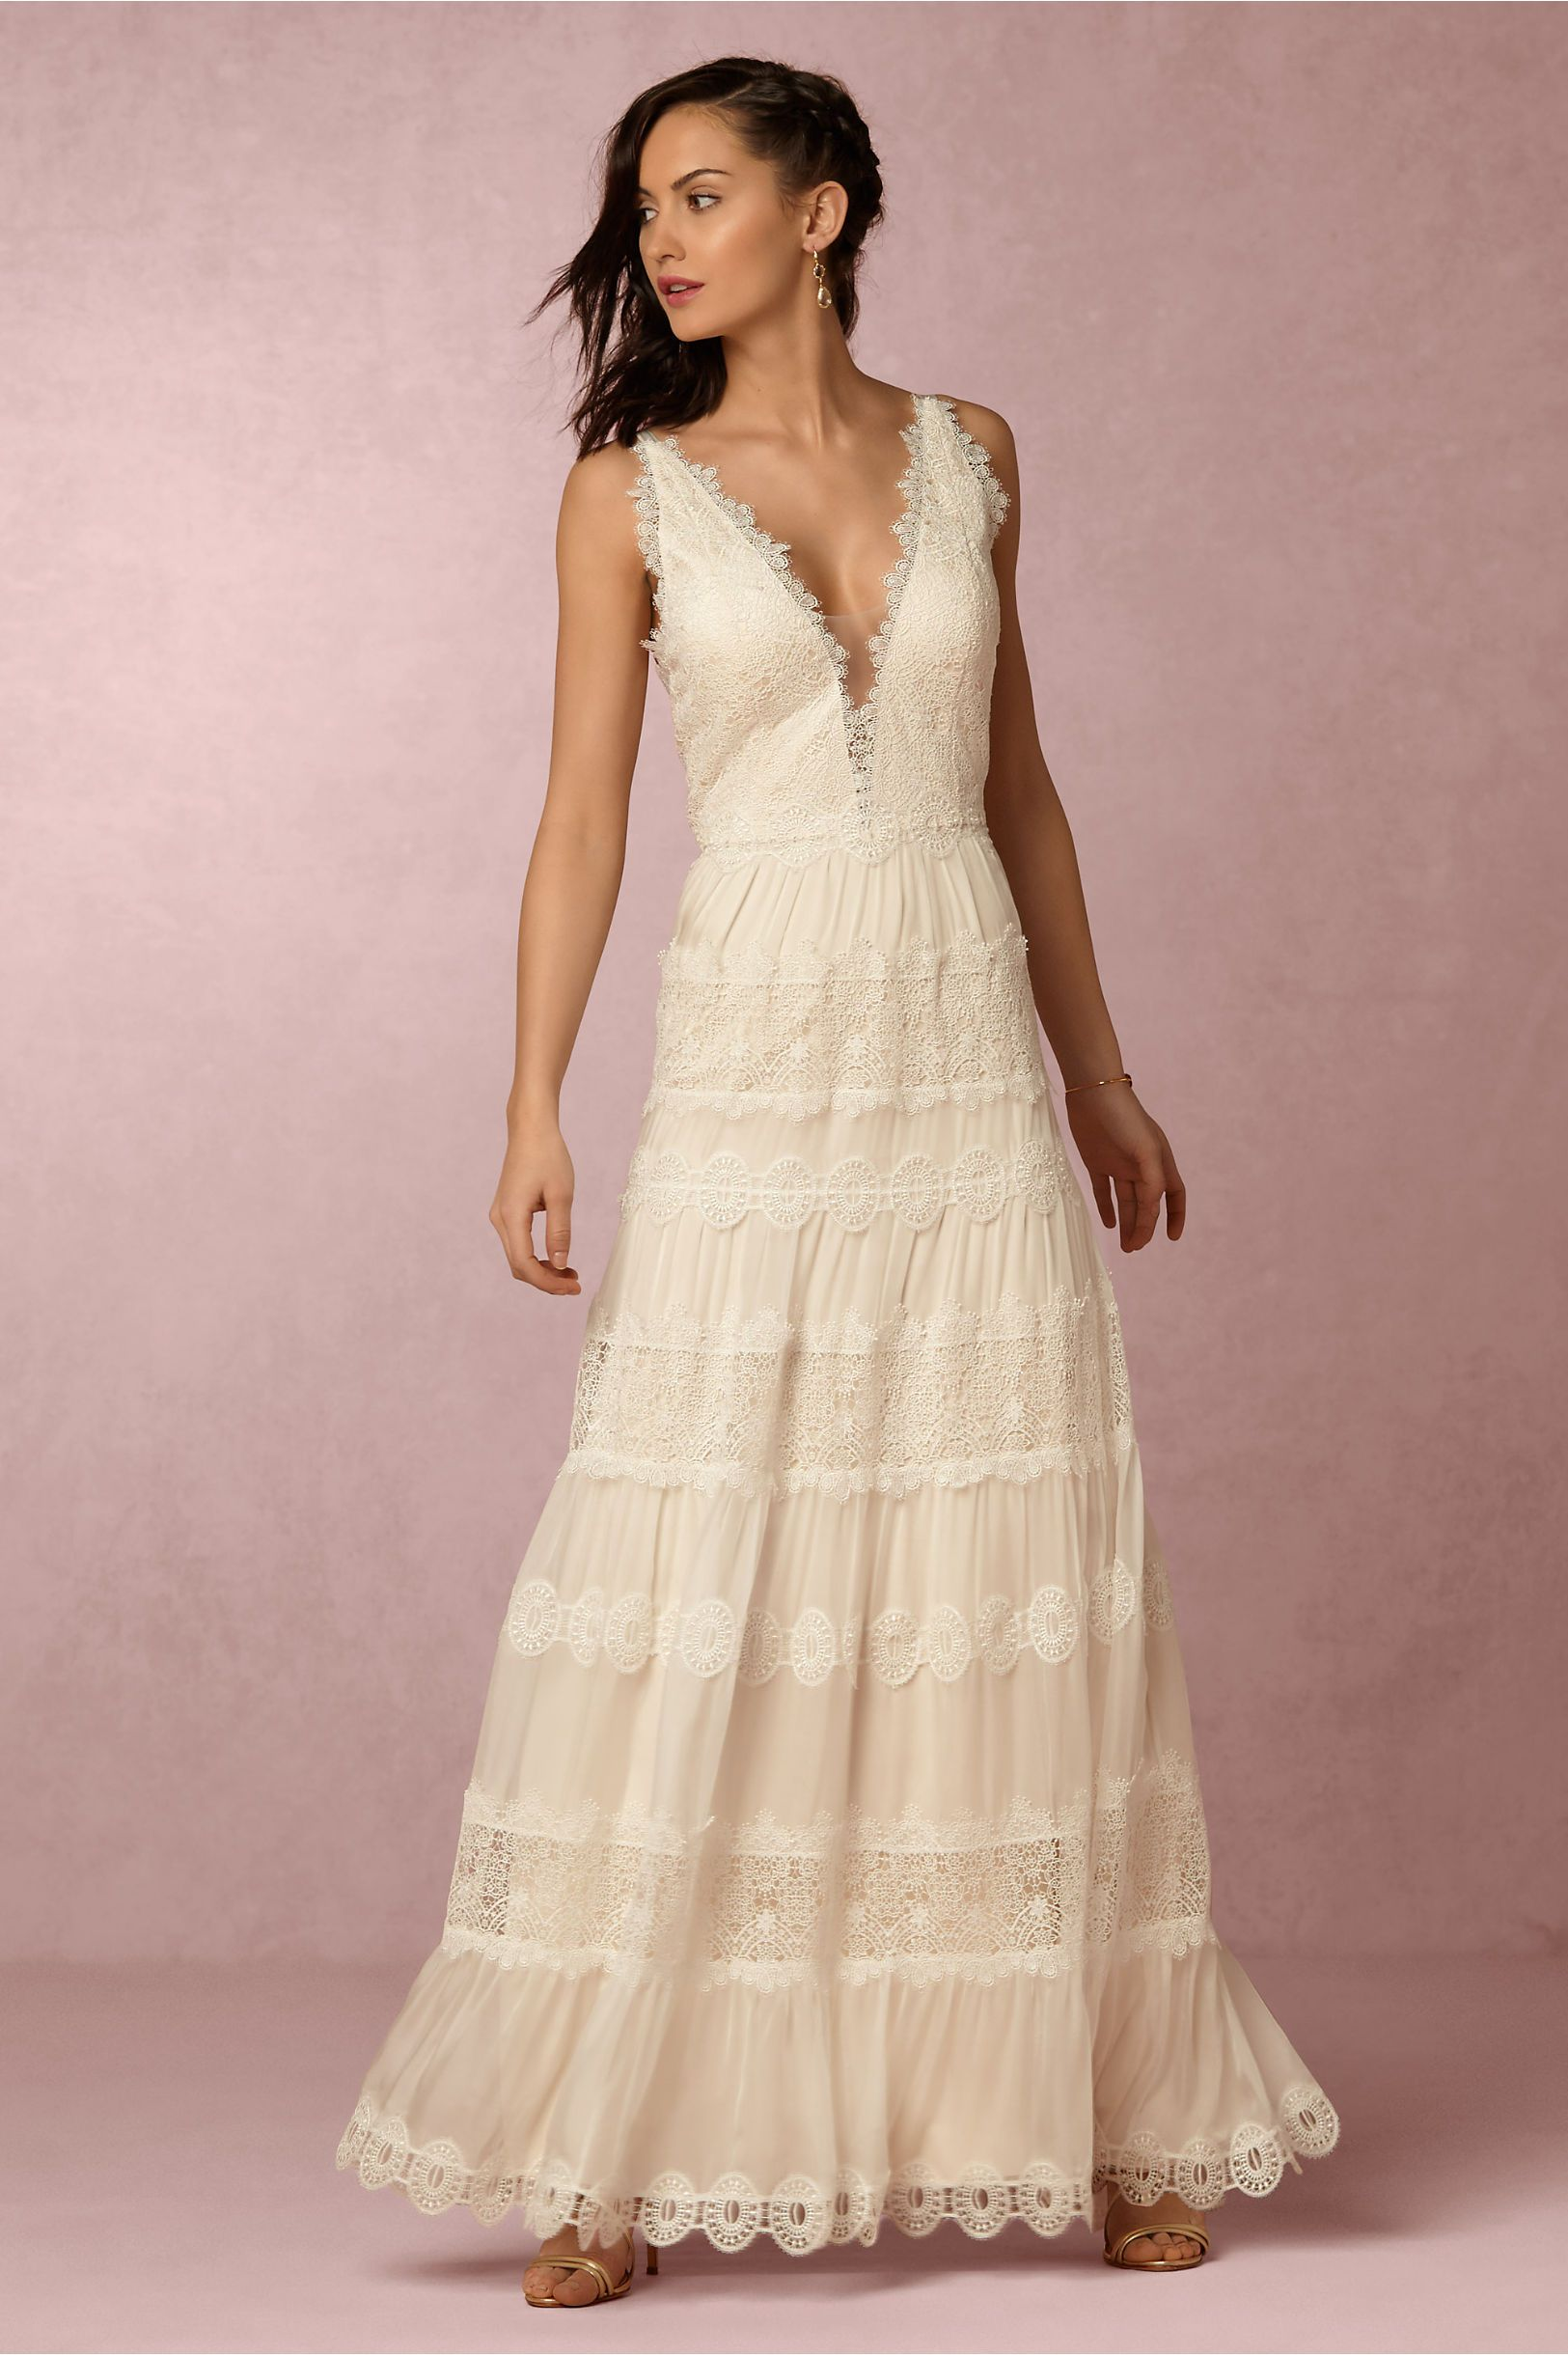 lace backless wedding dress | Genevieve Gown by Catherine Deane for ...